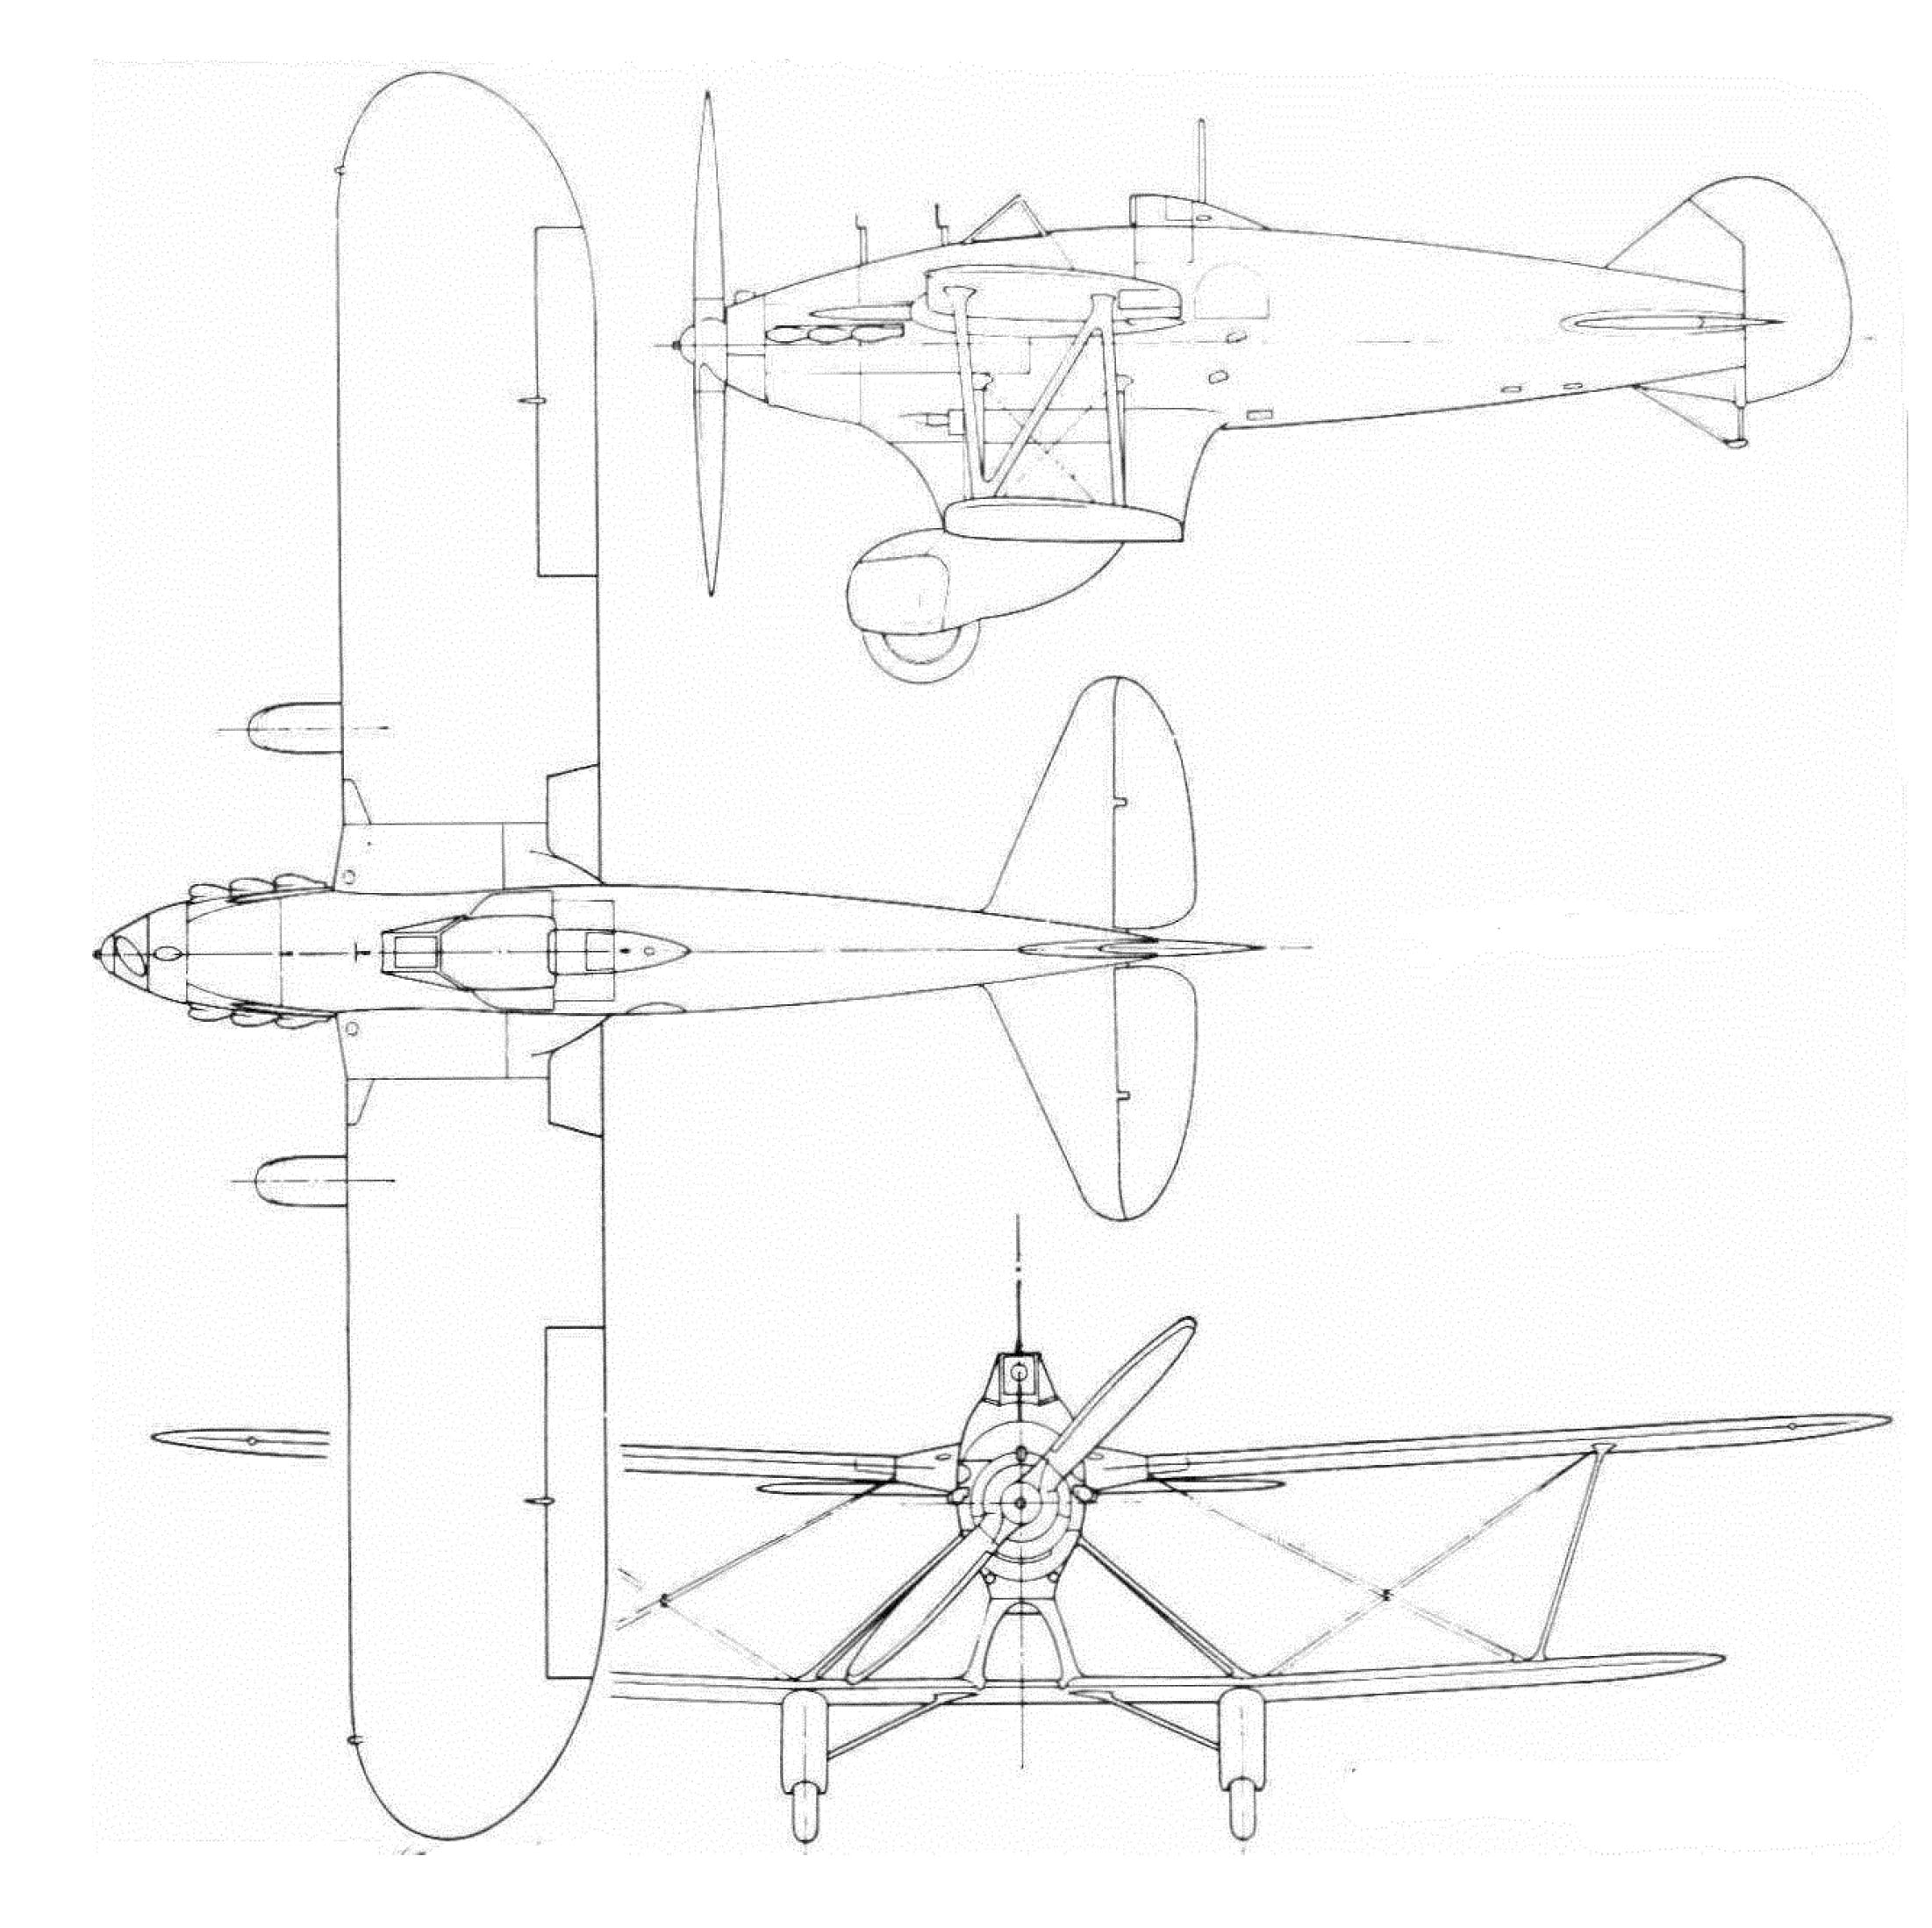 Les plans du Blackburn F.7